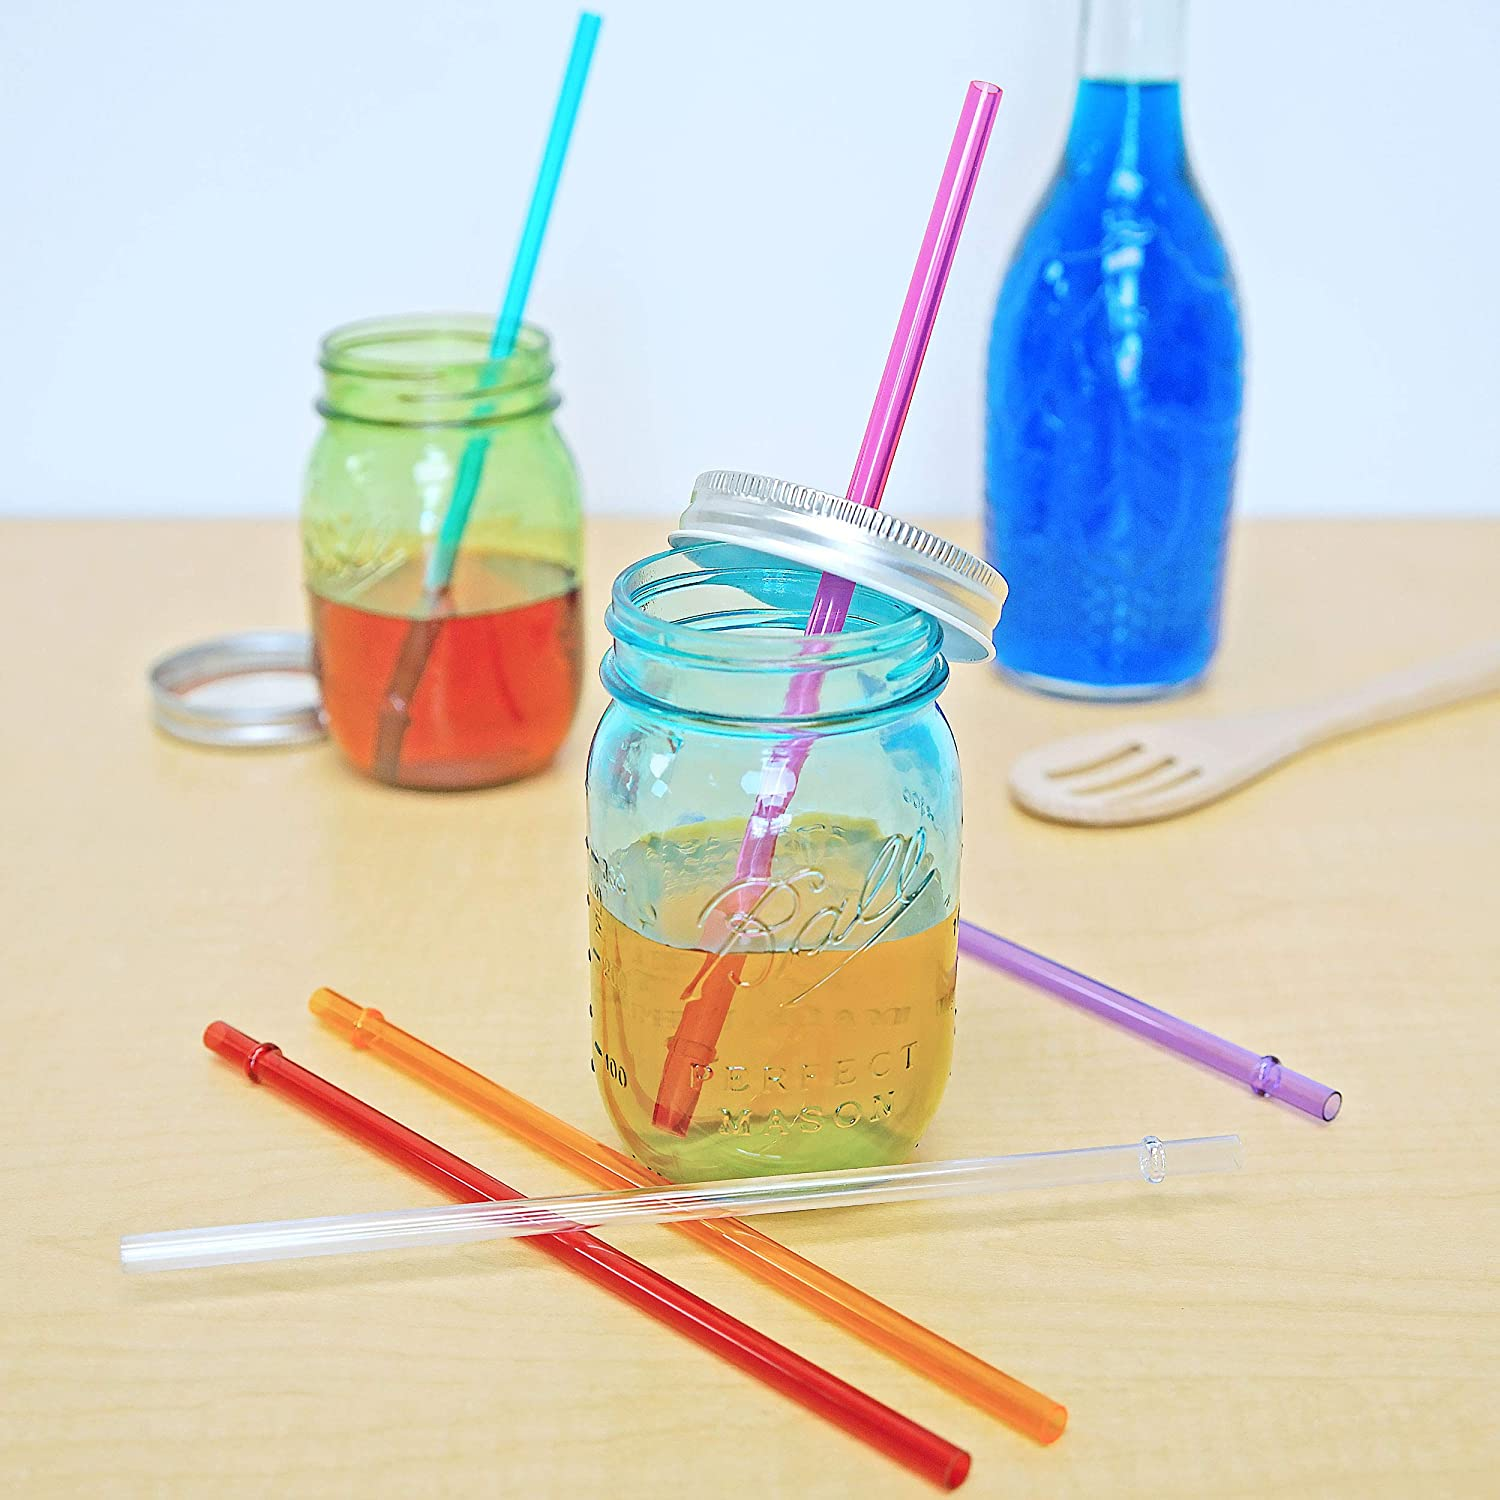 53c3d7e5e5f Southern Homewares Acrylic Rainbow Colored Drinking Straws-Set of 6 10, 12,  16, and 20oz Fits Tervis Tumblers-New Replacements: Amazon.co.uk: Kitchen &  Home